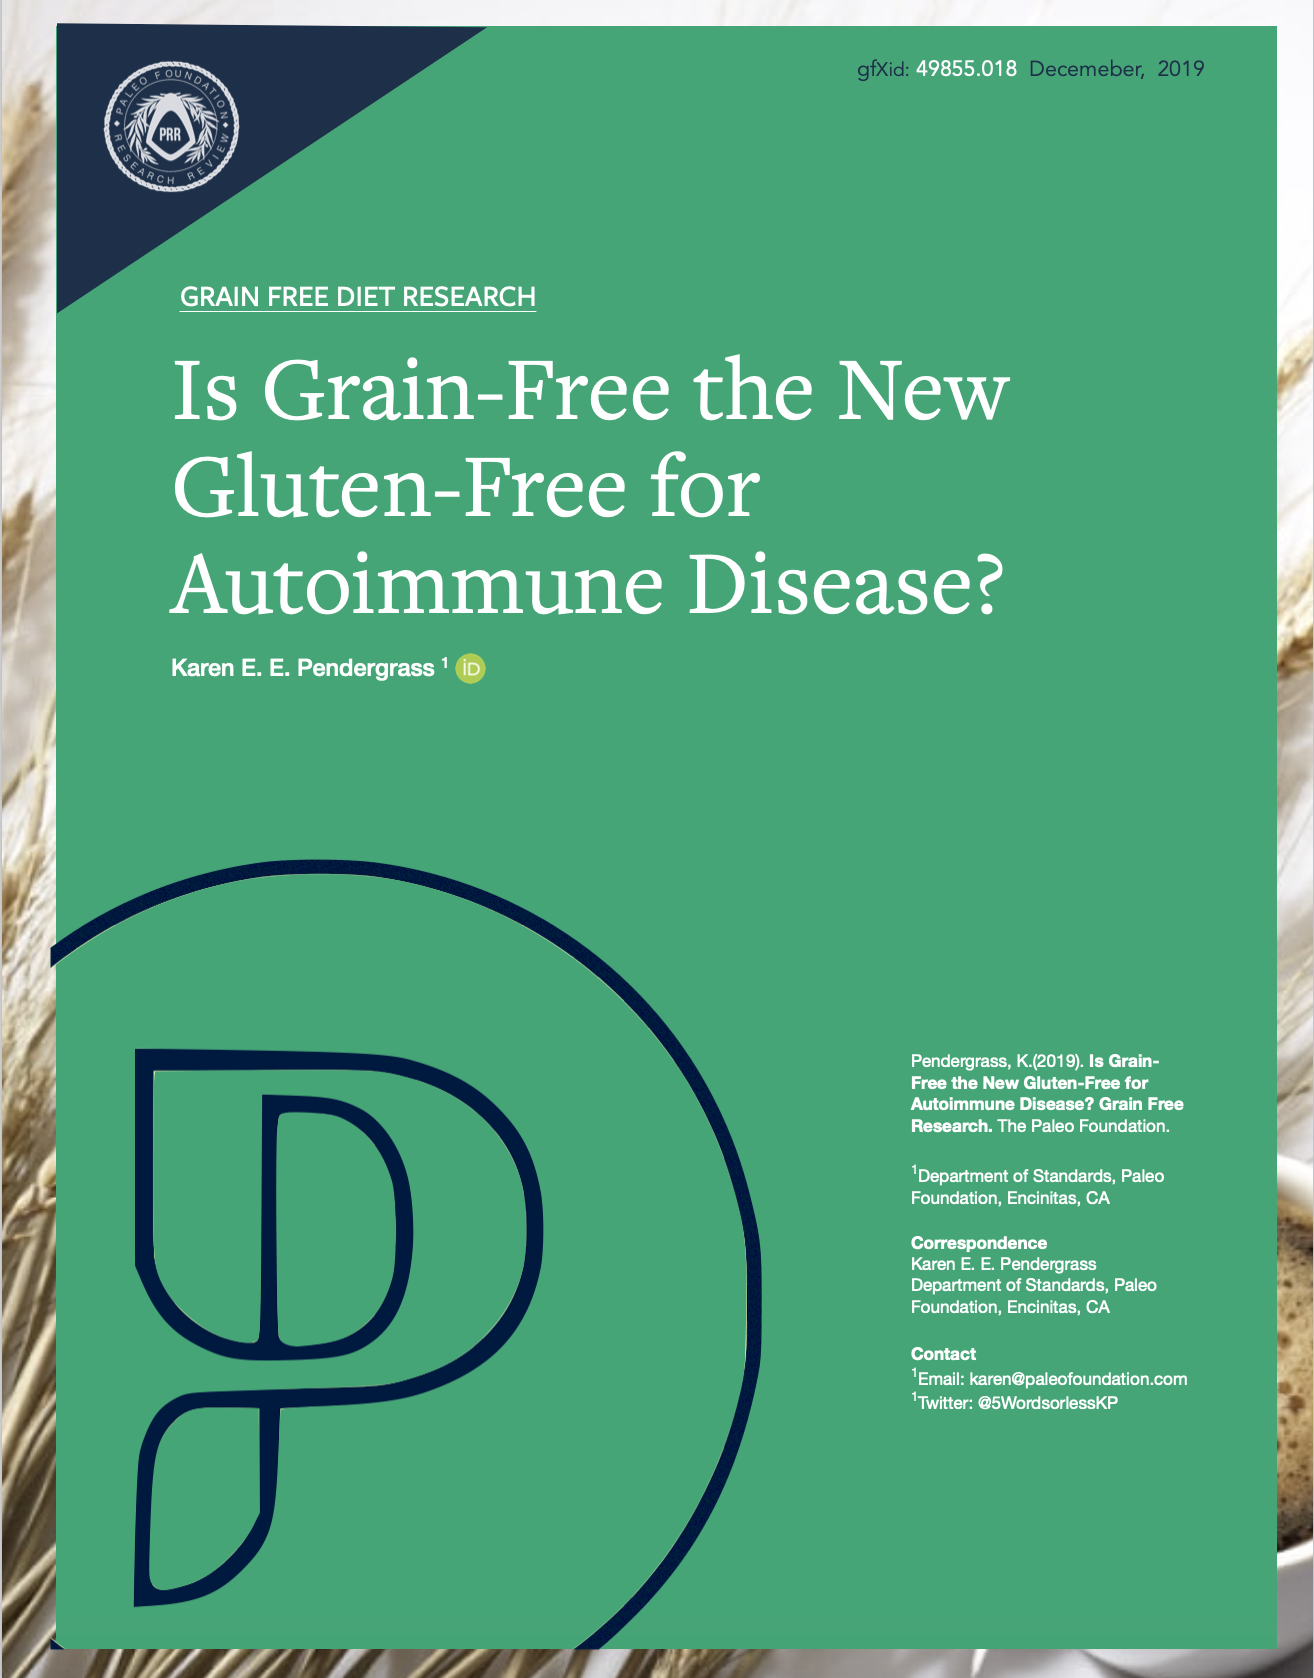 Is Grain Free The New Gluten Free for Autoimmune Disease?